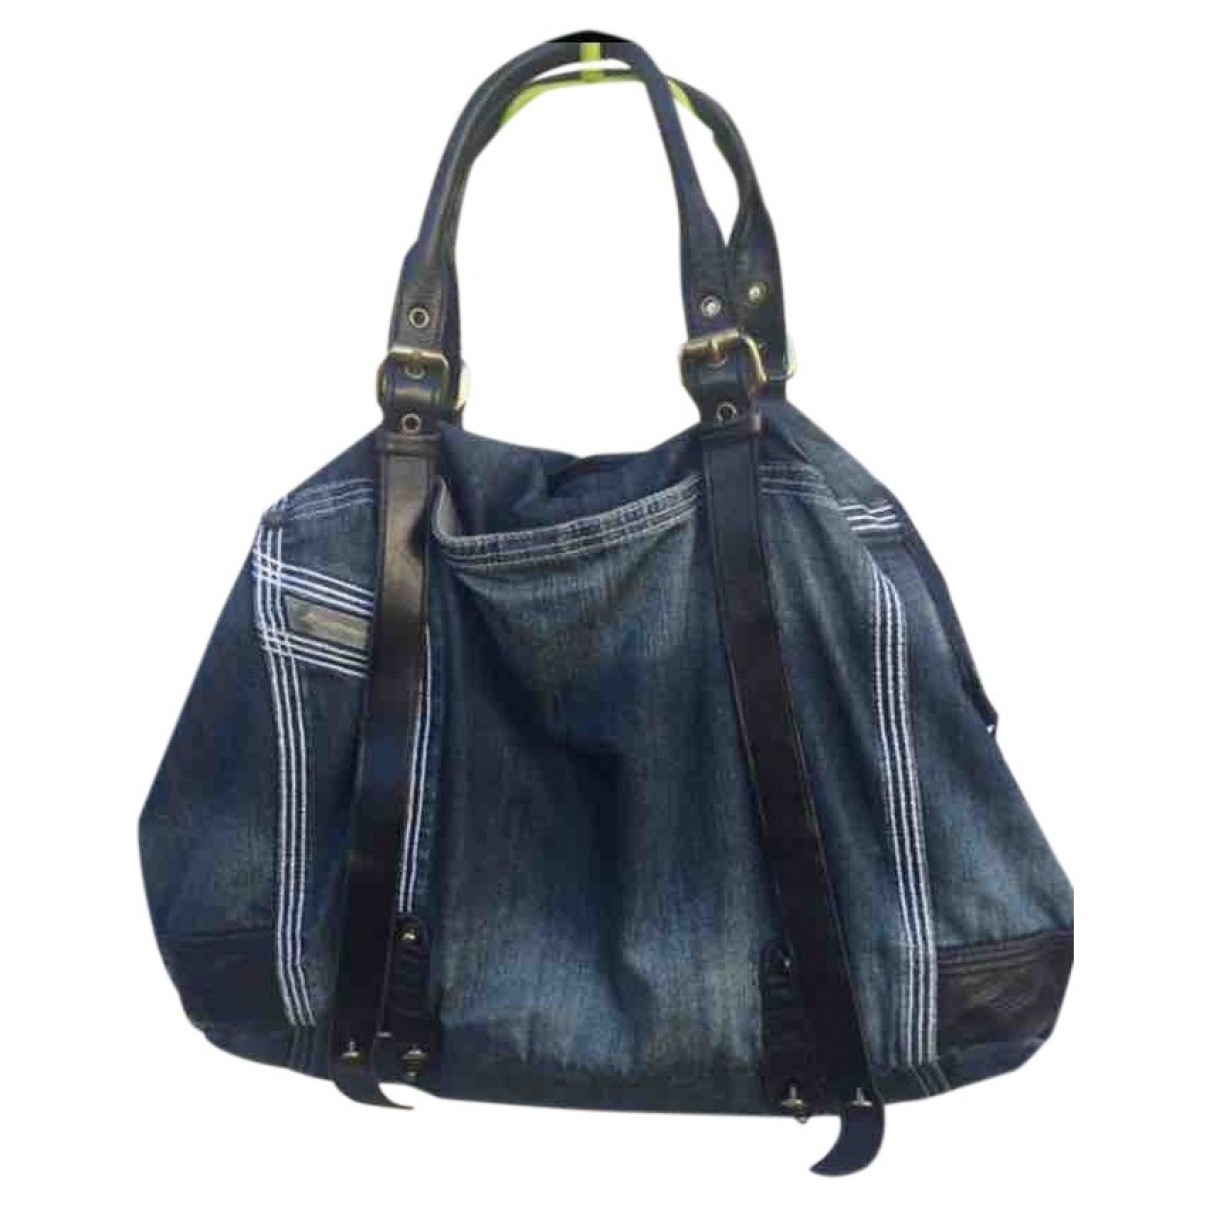 Diesel \N Blue Denim - Jeans handbag for Women \N